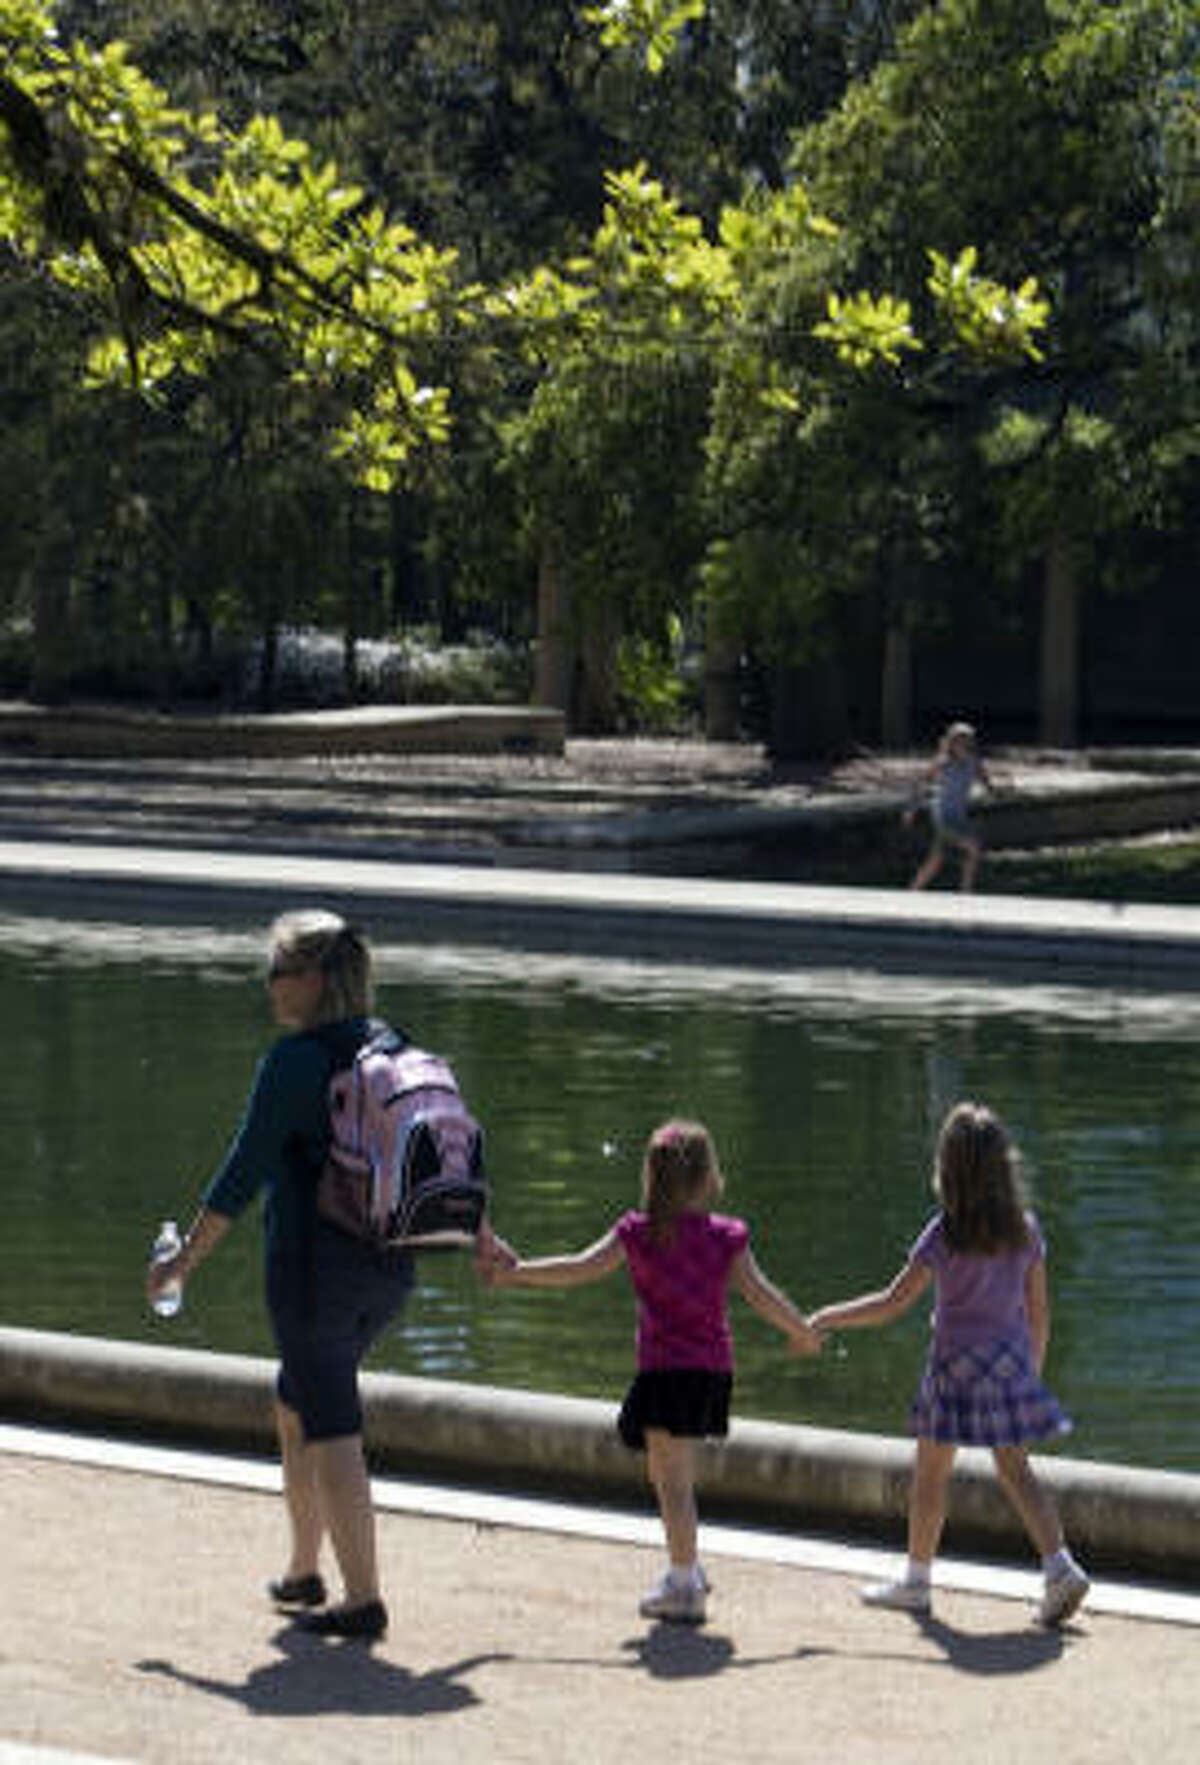 Celebrating their spring break, Stacy Fowle, Leah Hotze, and her mother Kristi Hotze walk to the zoo through Hermann Park.